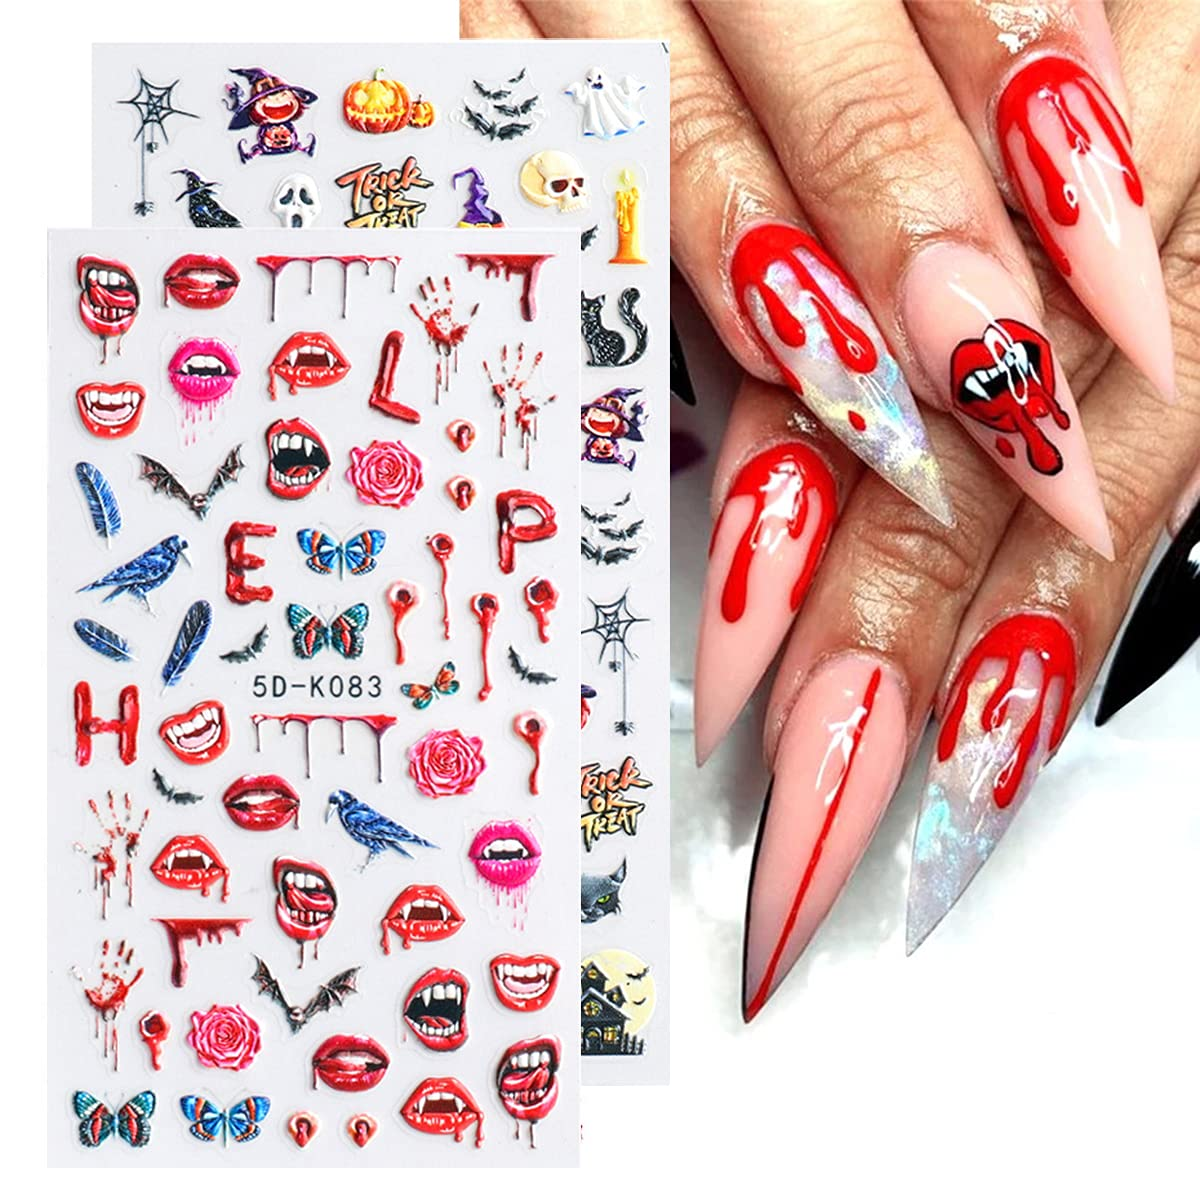 Halloween Nail It is very 4 years warranty popular Art Stickers Decals Embossed Stereoscopic 5D